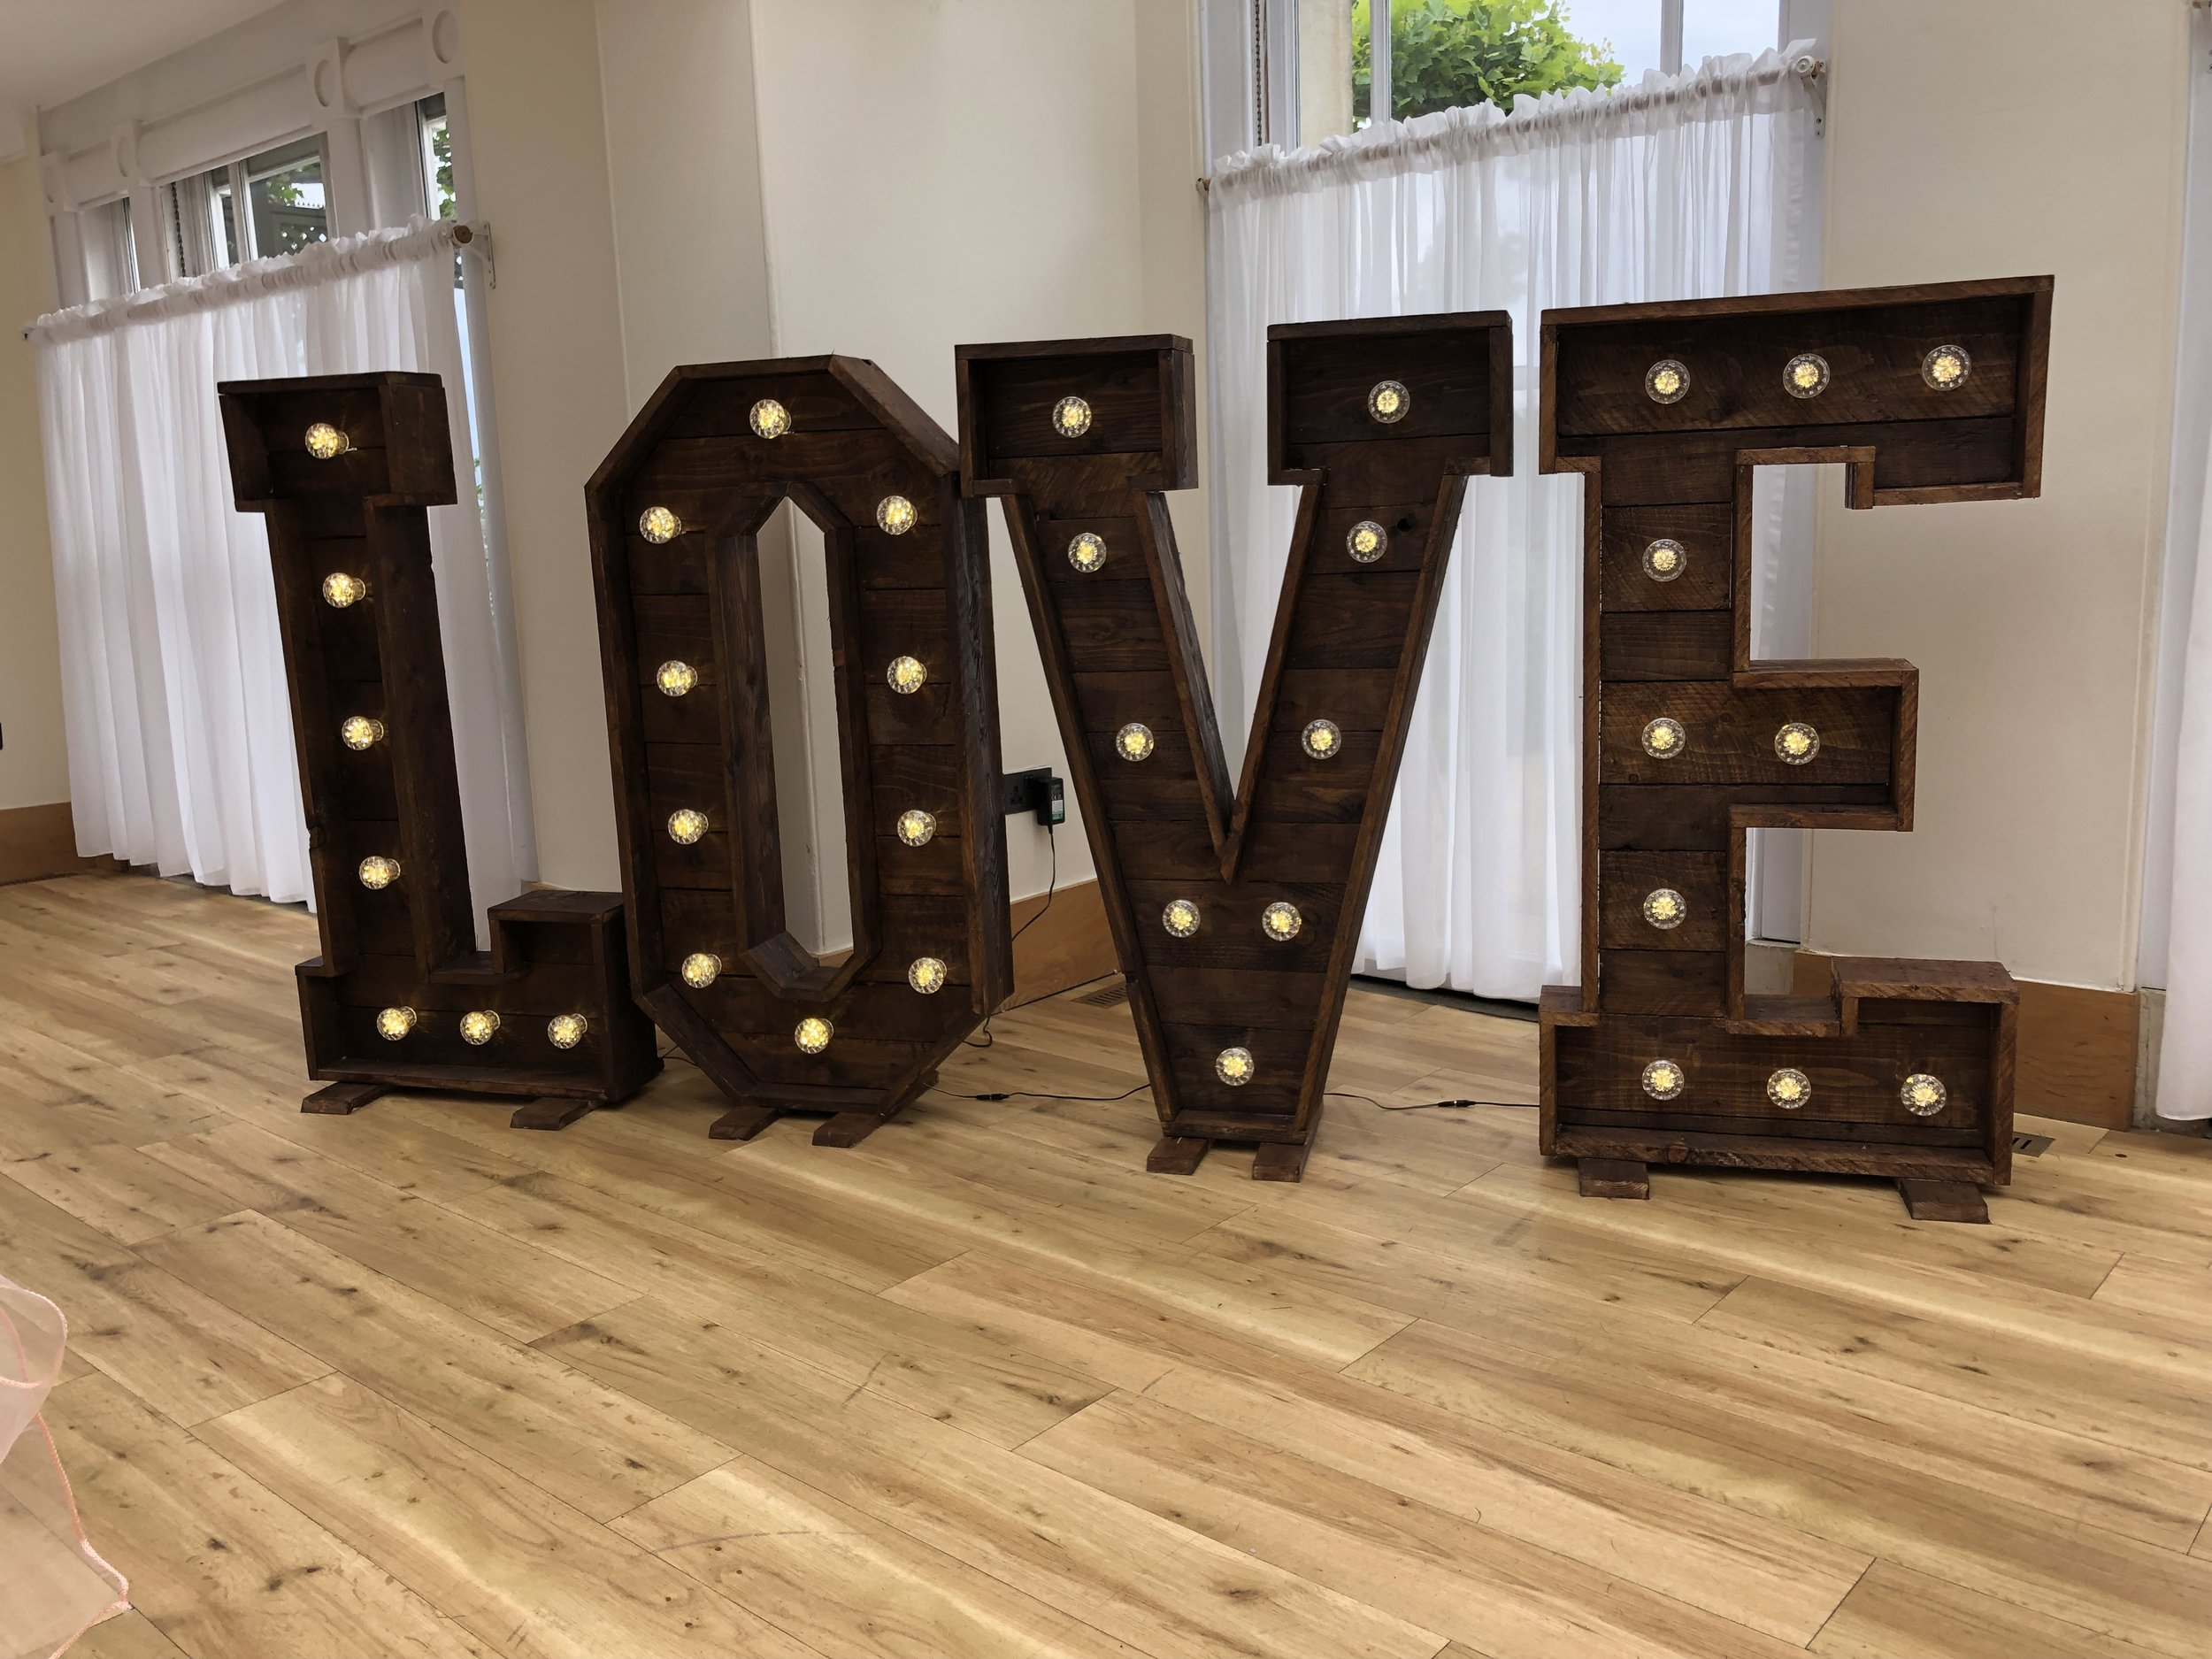 Rustic LOVE letters -